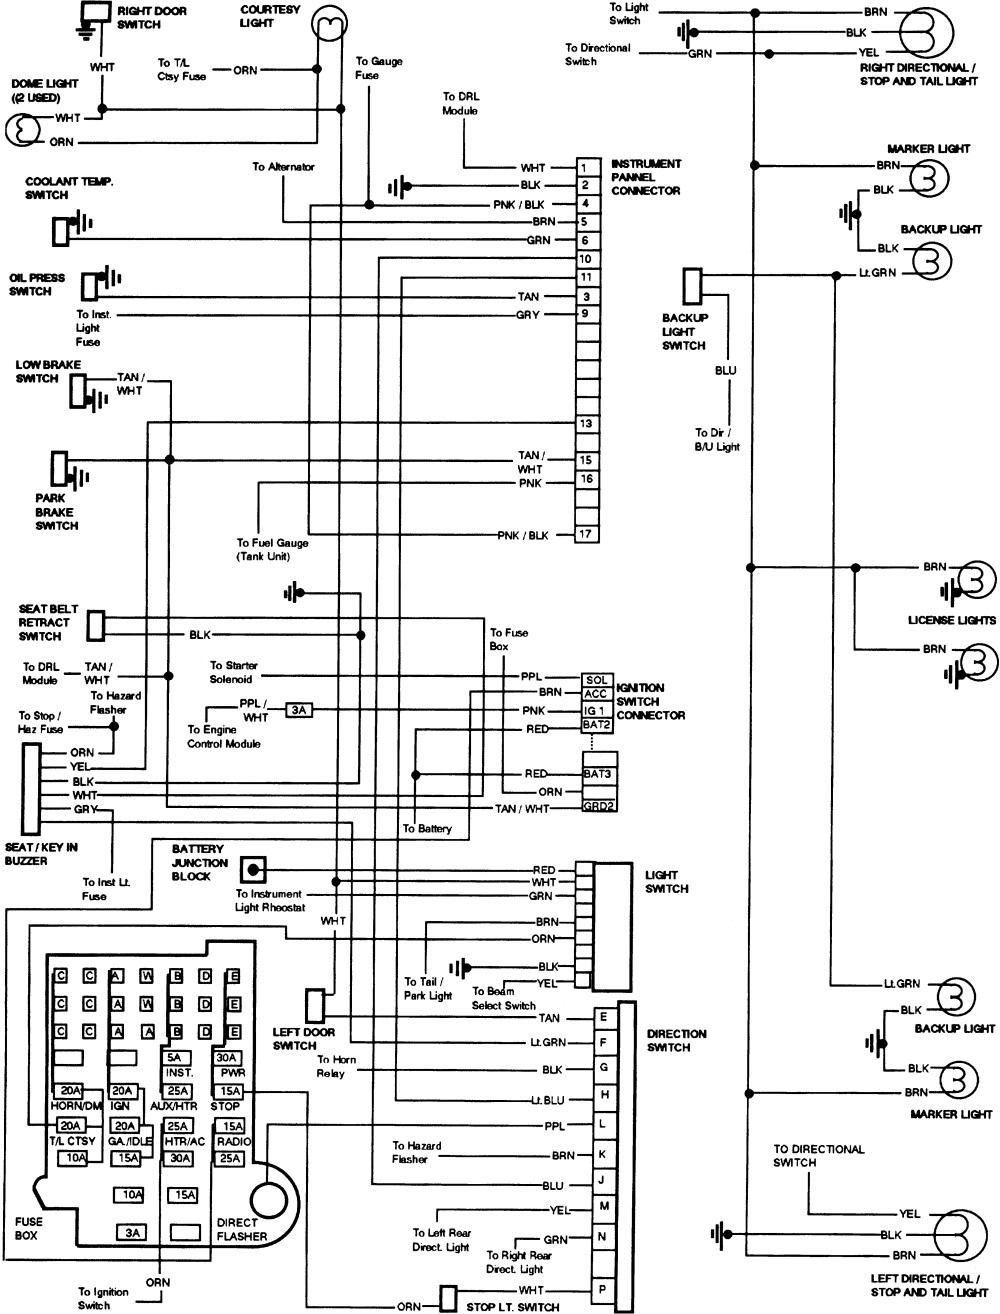 hight resolution of 1985 gmc wiring diagram free wiring diagram for you u2022 1985 ford truck wiring diagram 1985 gmc wiring diagram